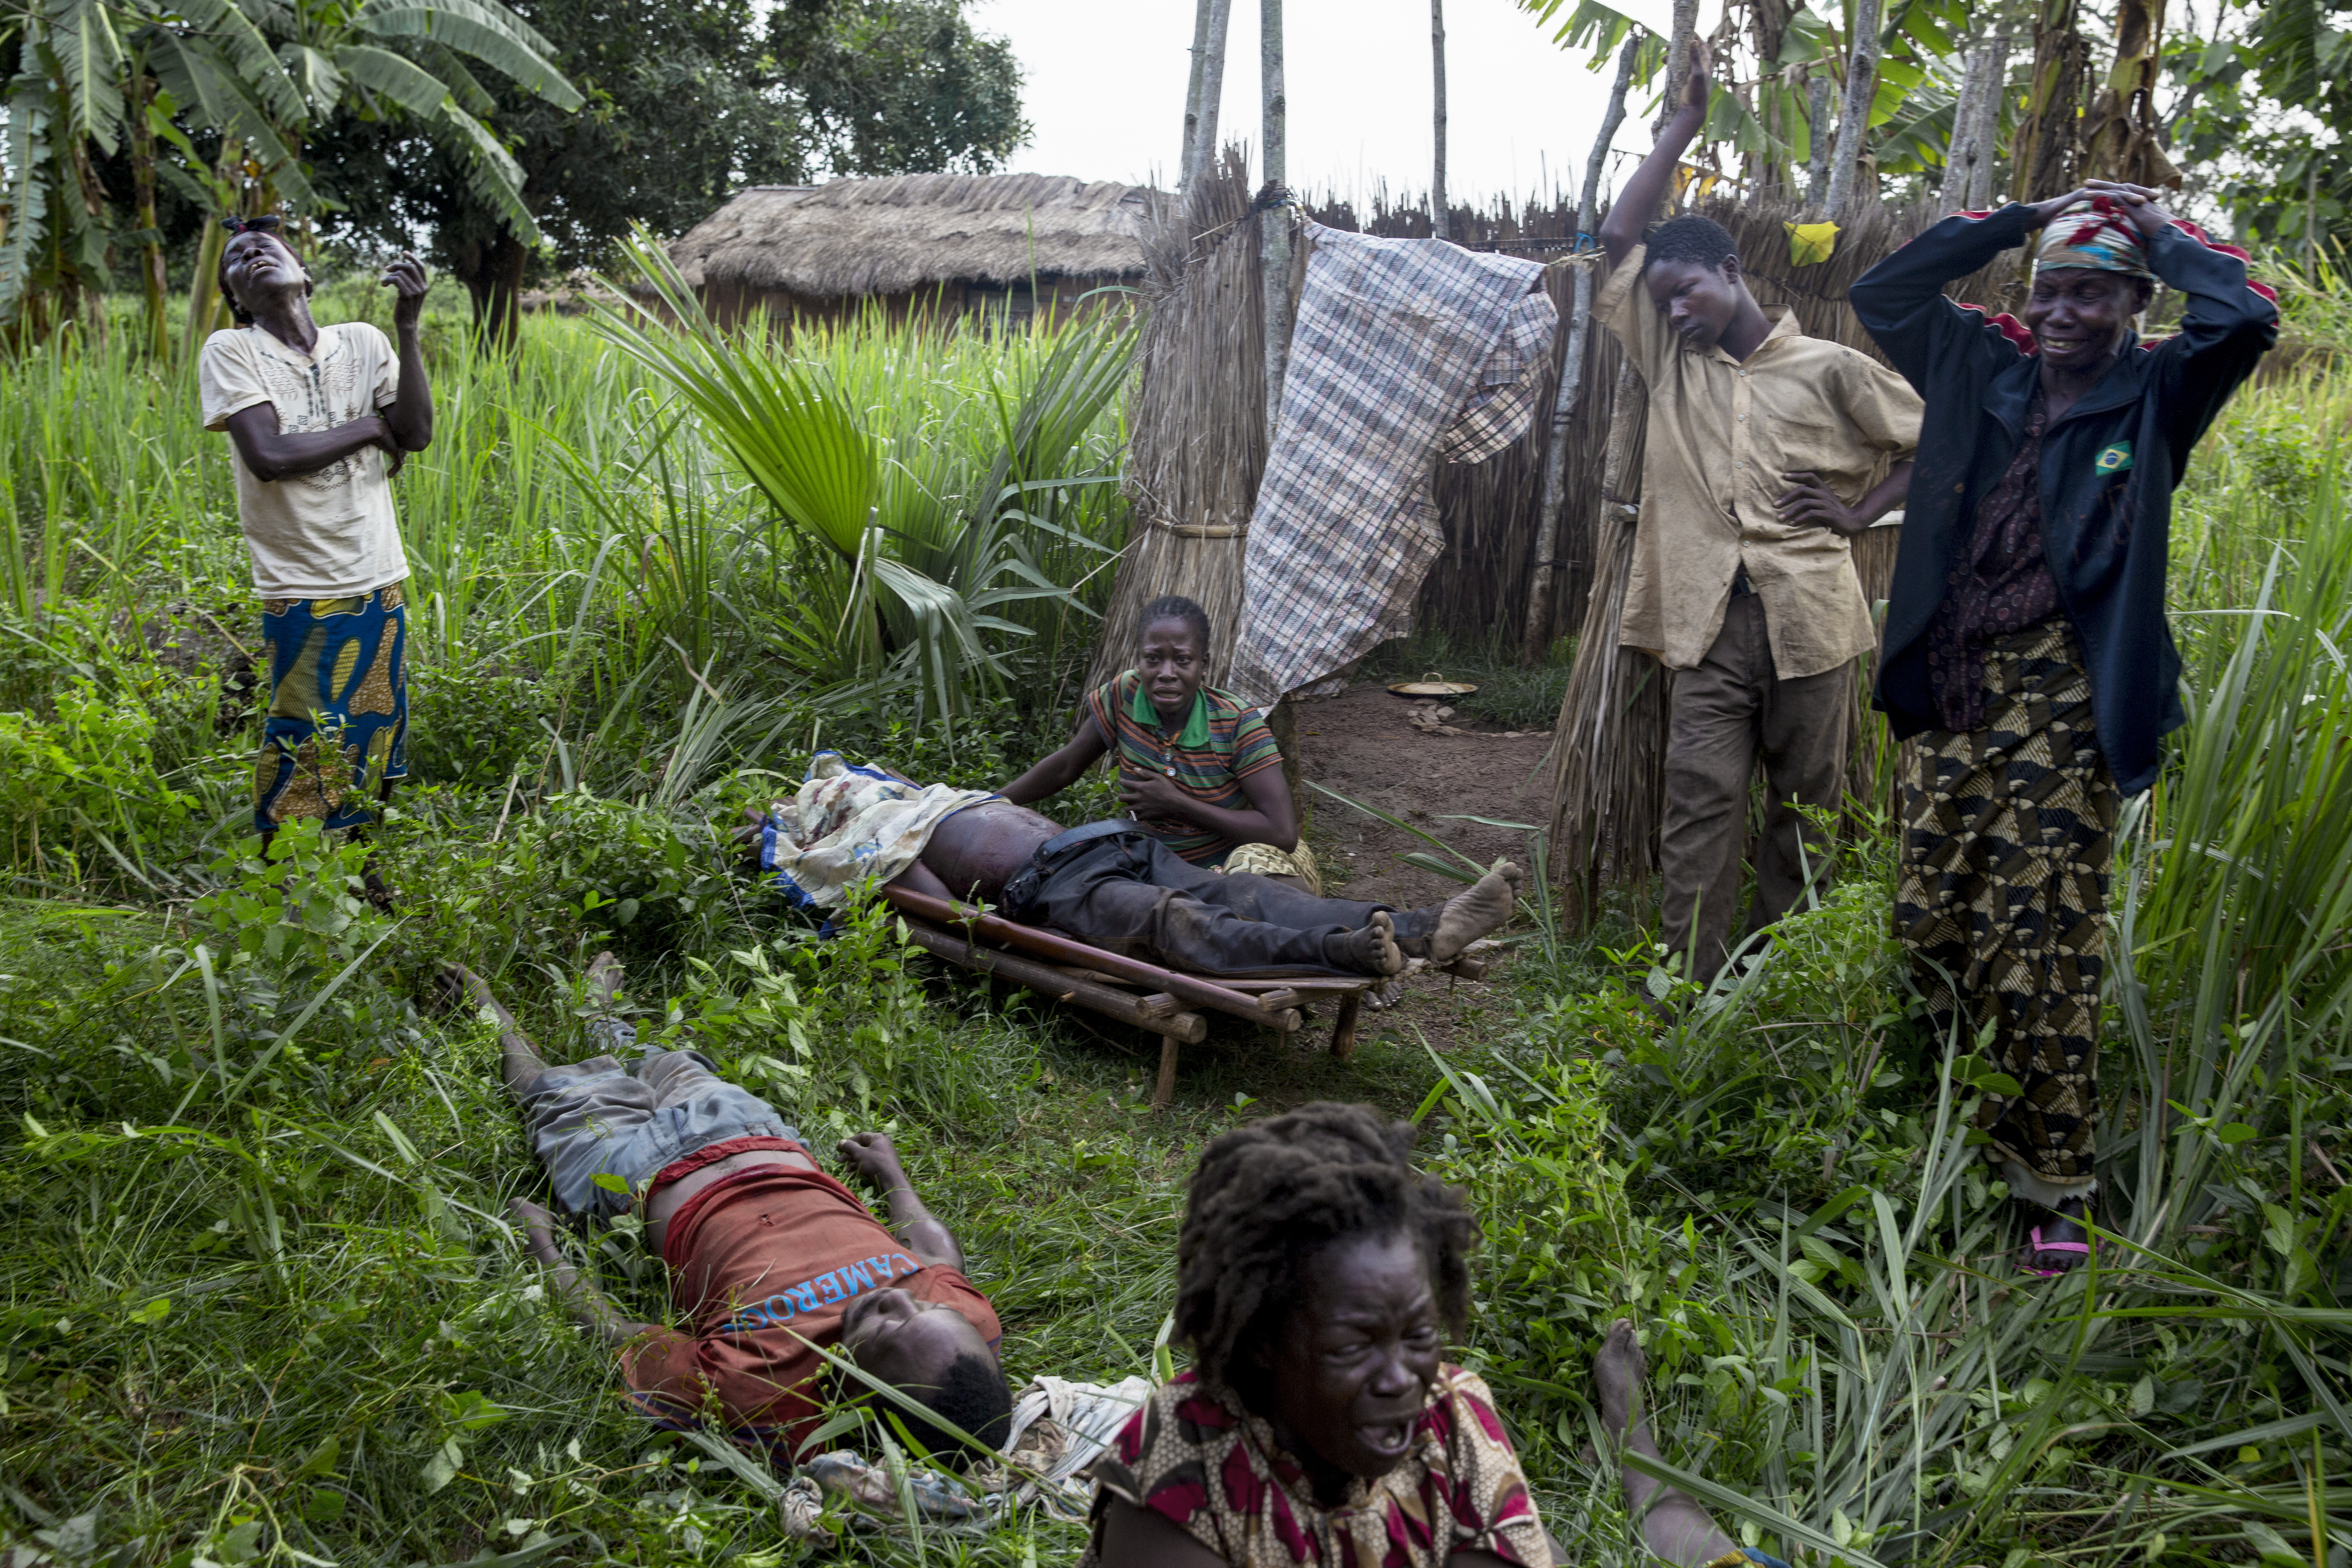 Apr. 14, 2014. Gulinga. Relatives cry over the deaths of two men and a woman killed by ex-Séléka fighters.